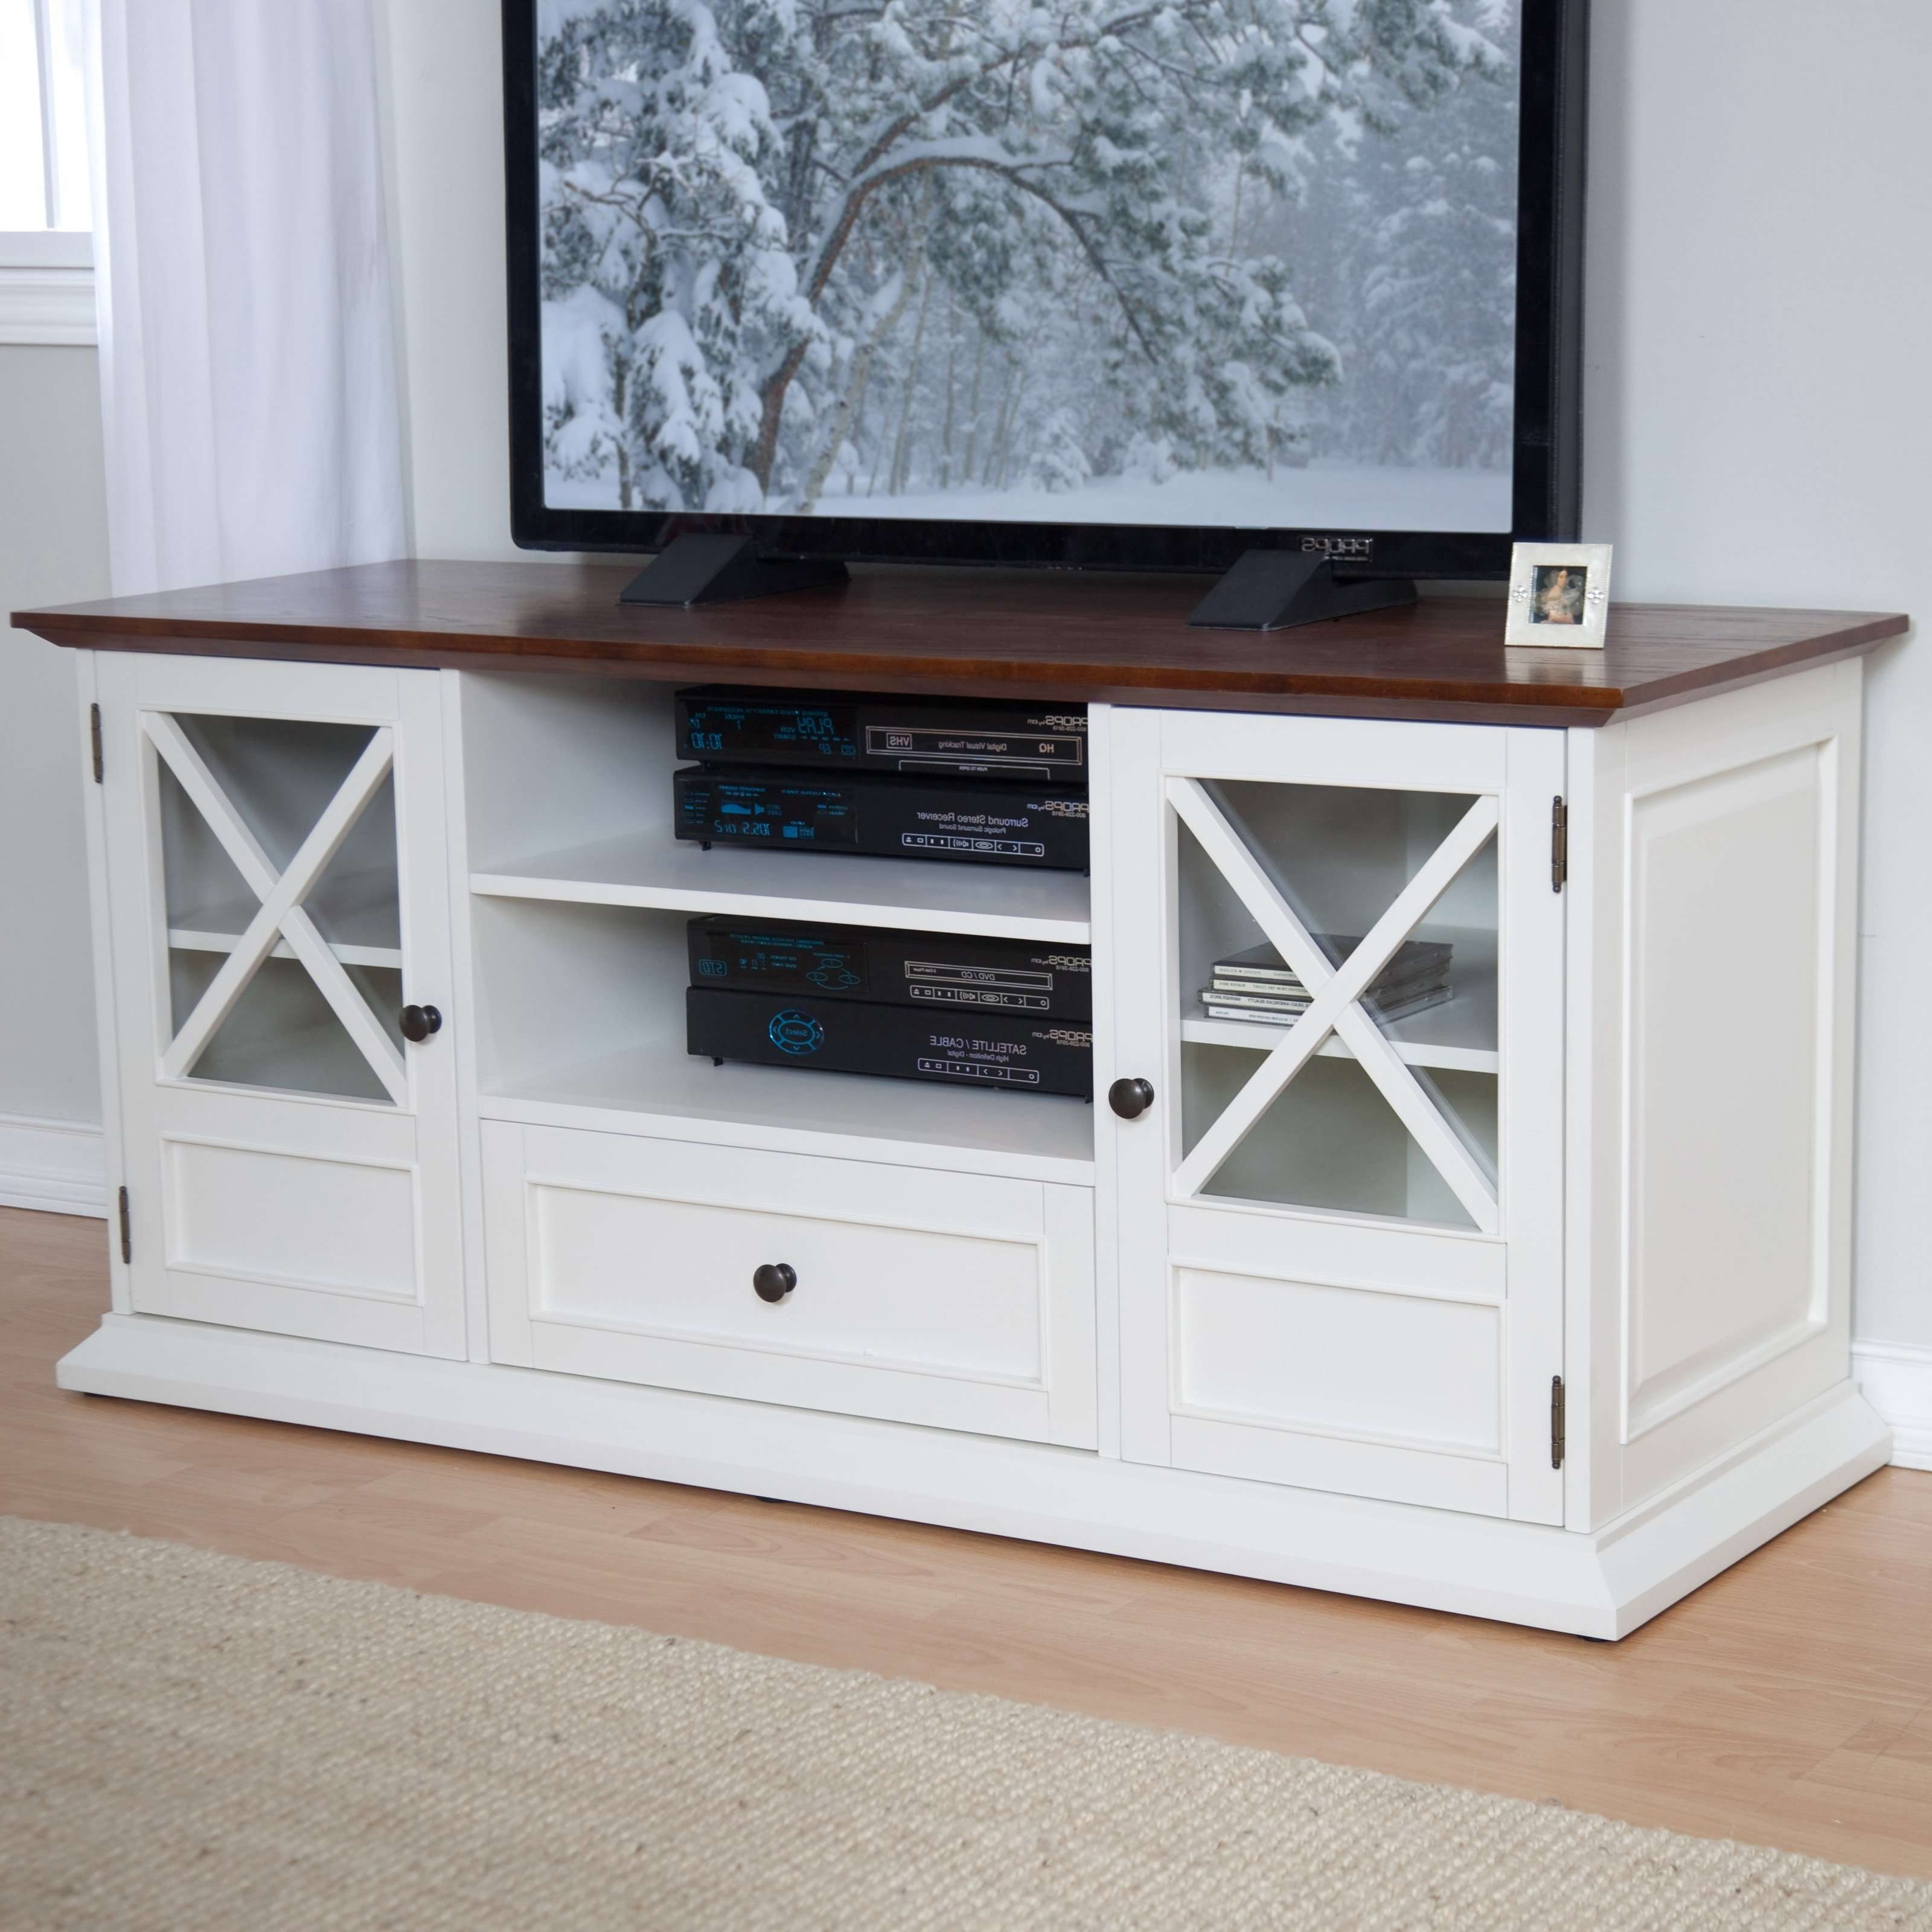 84 Inch Tv Stand Intended For 84 Inch Tv Stands (View 1 of 15)